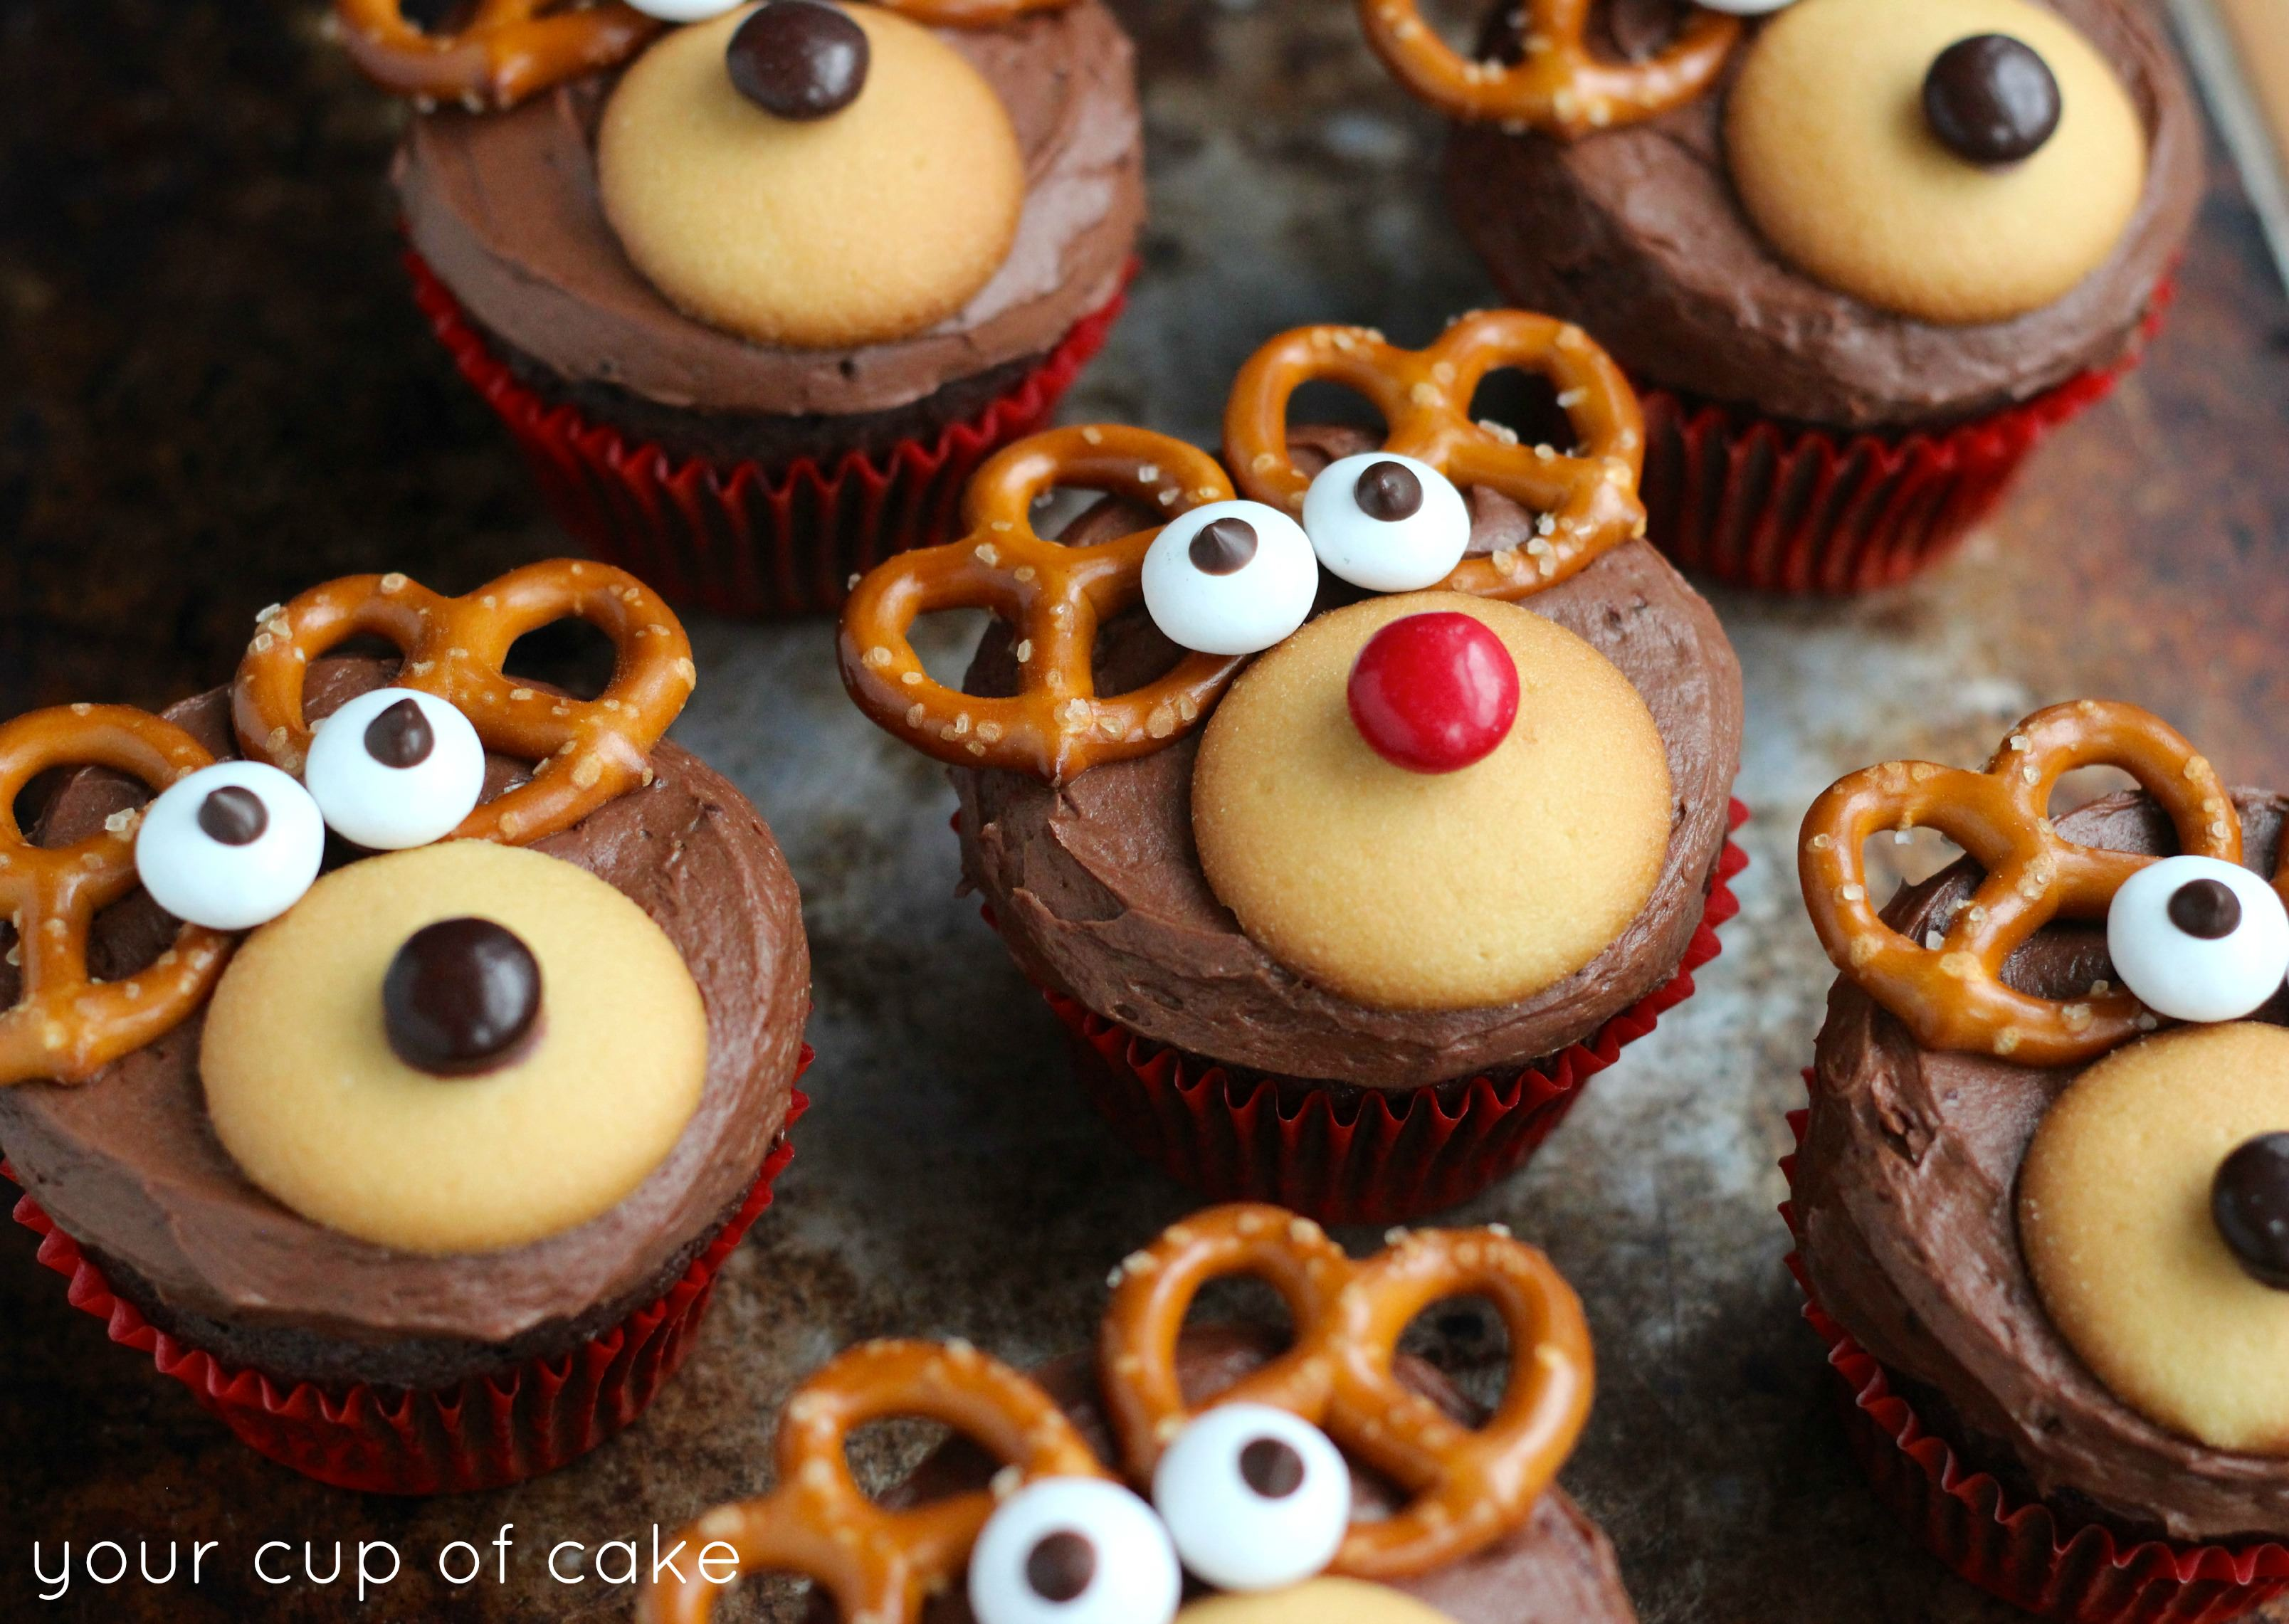 Reindeer cupcakes your cup of cake reindeer cupcakes forumfinder Choice Image